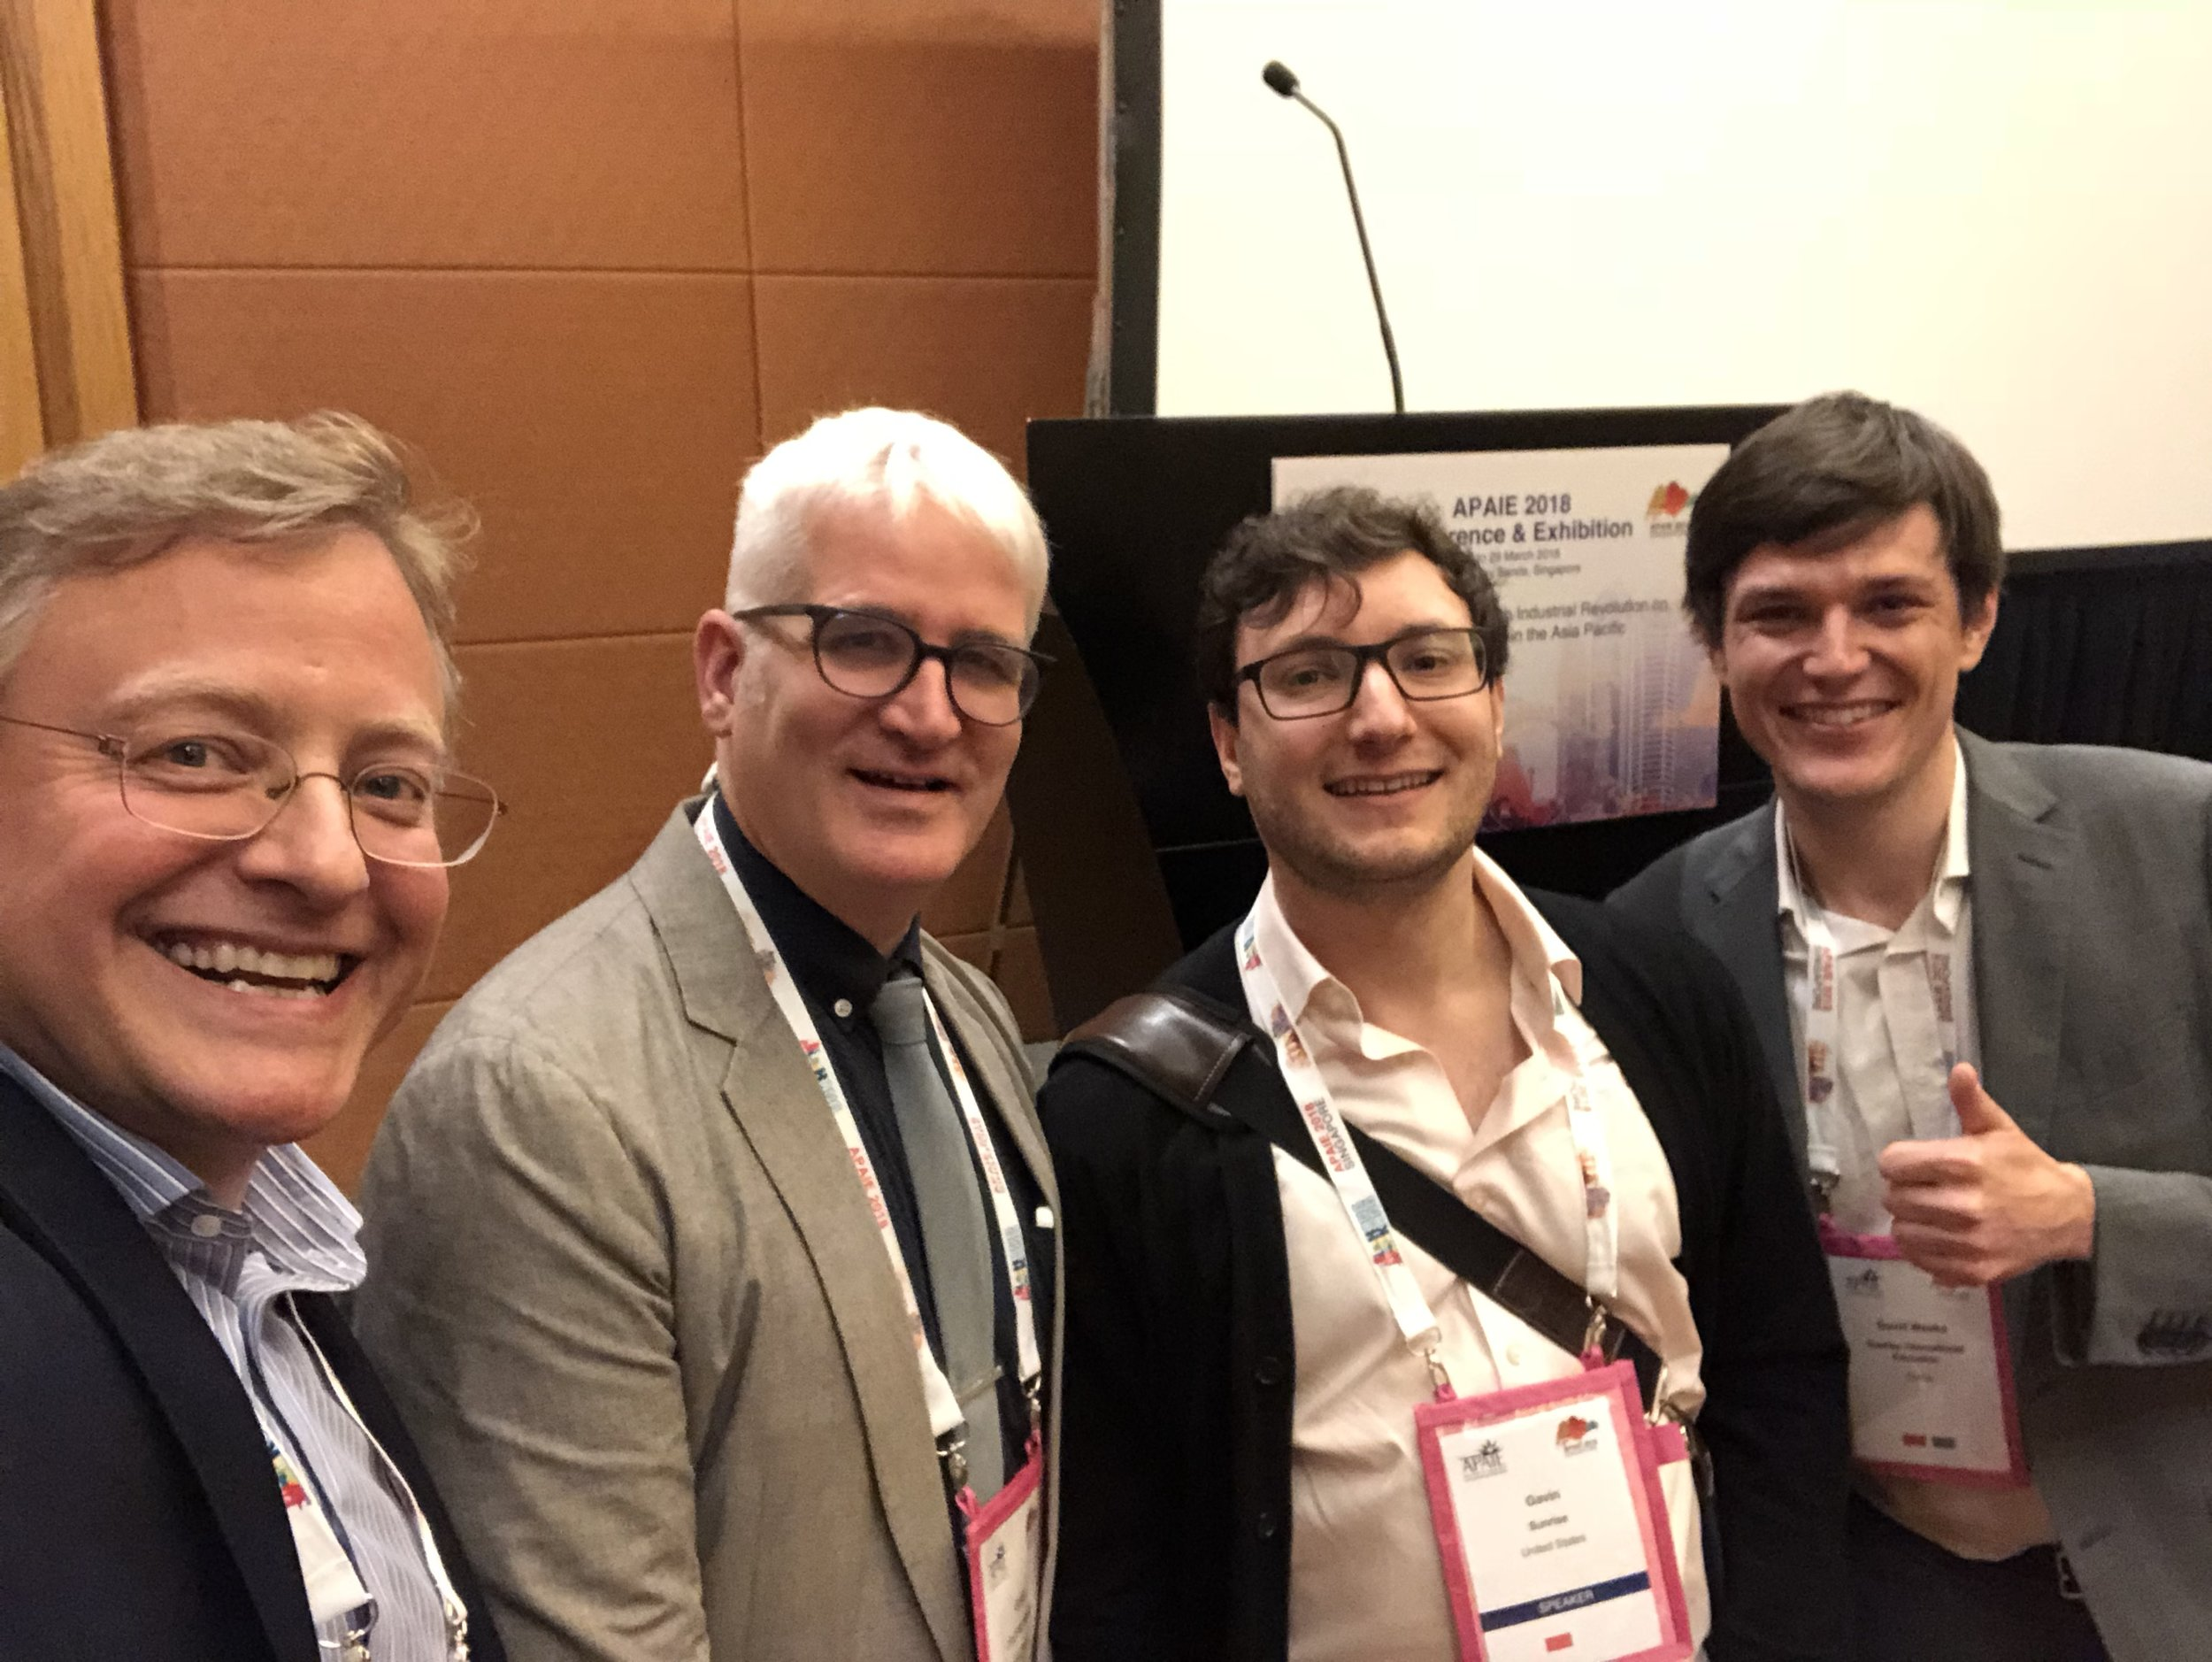 Posing after our panel with fellow panelists Clay Hensley of College Board and Gavin Newton Tanser and also David Weeks of Sunrise International